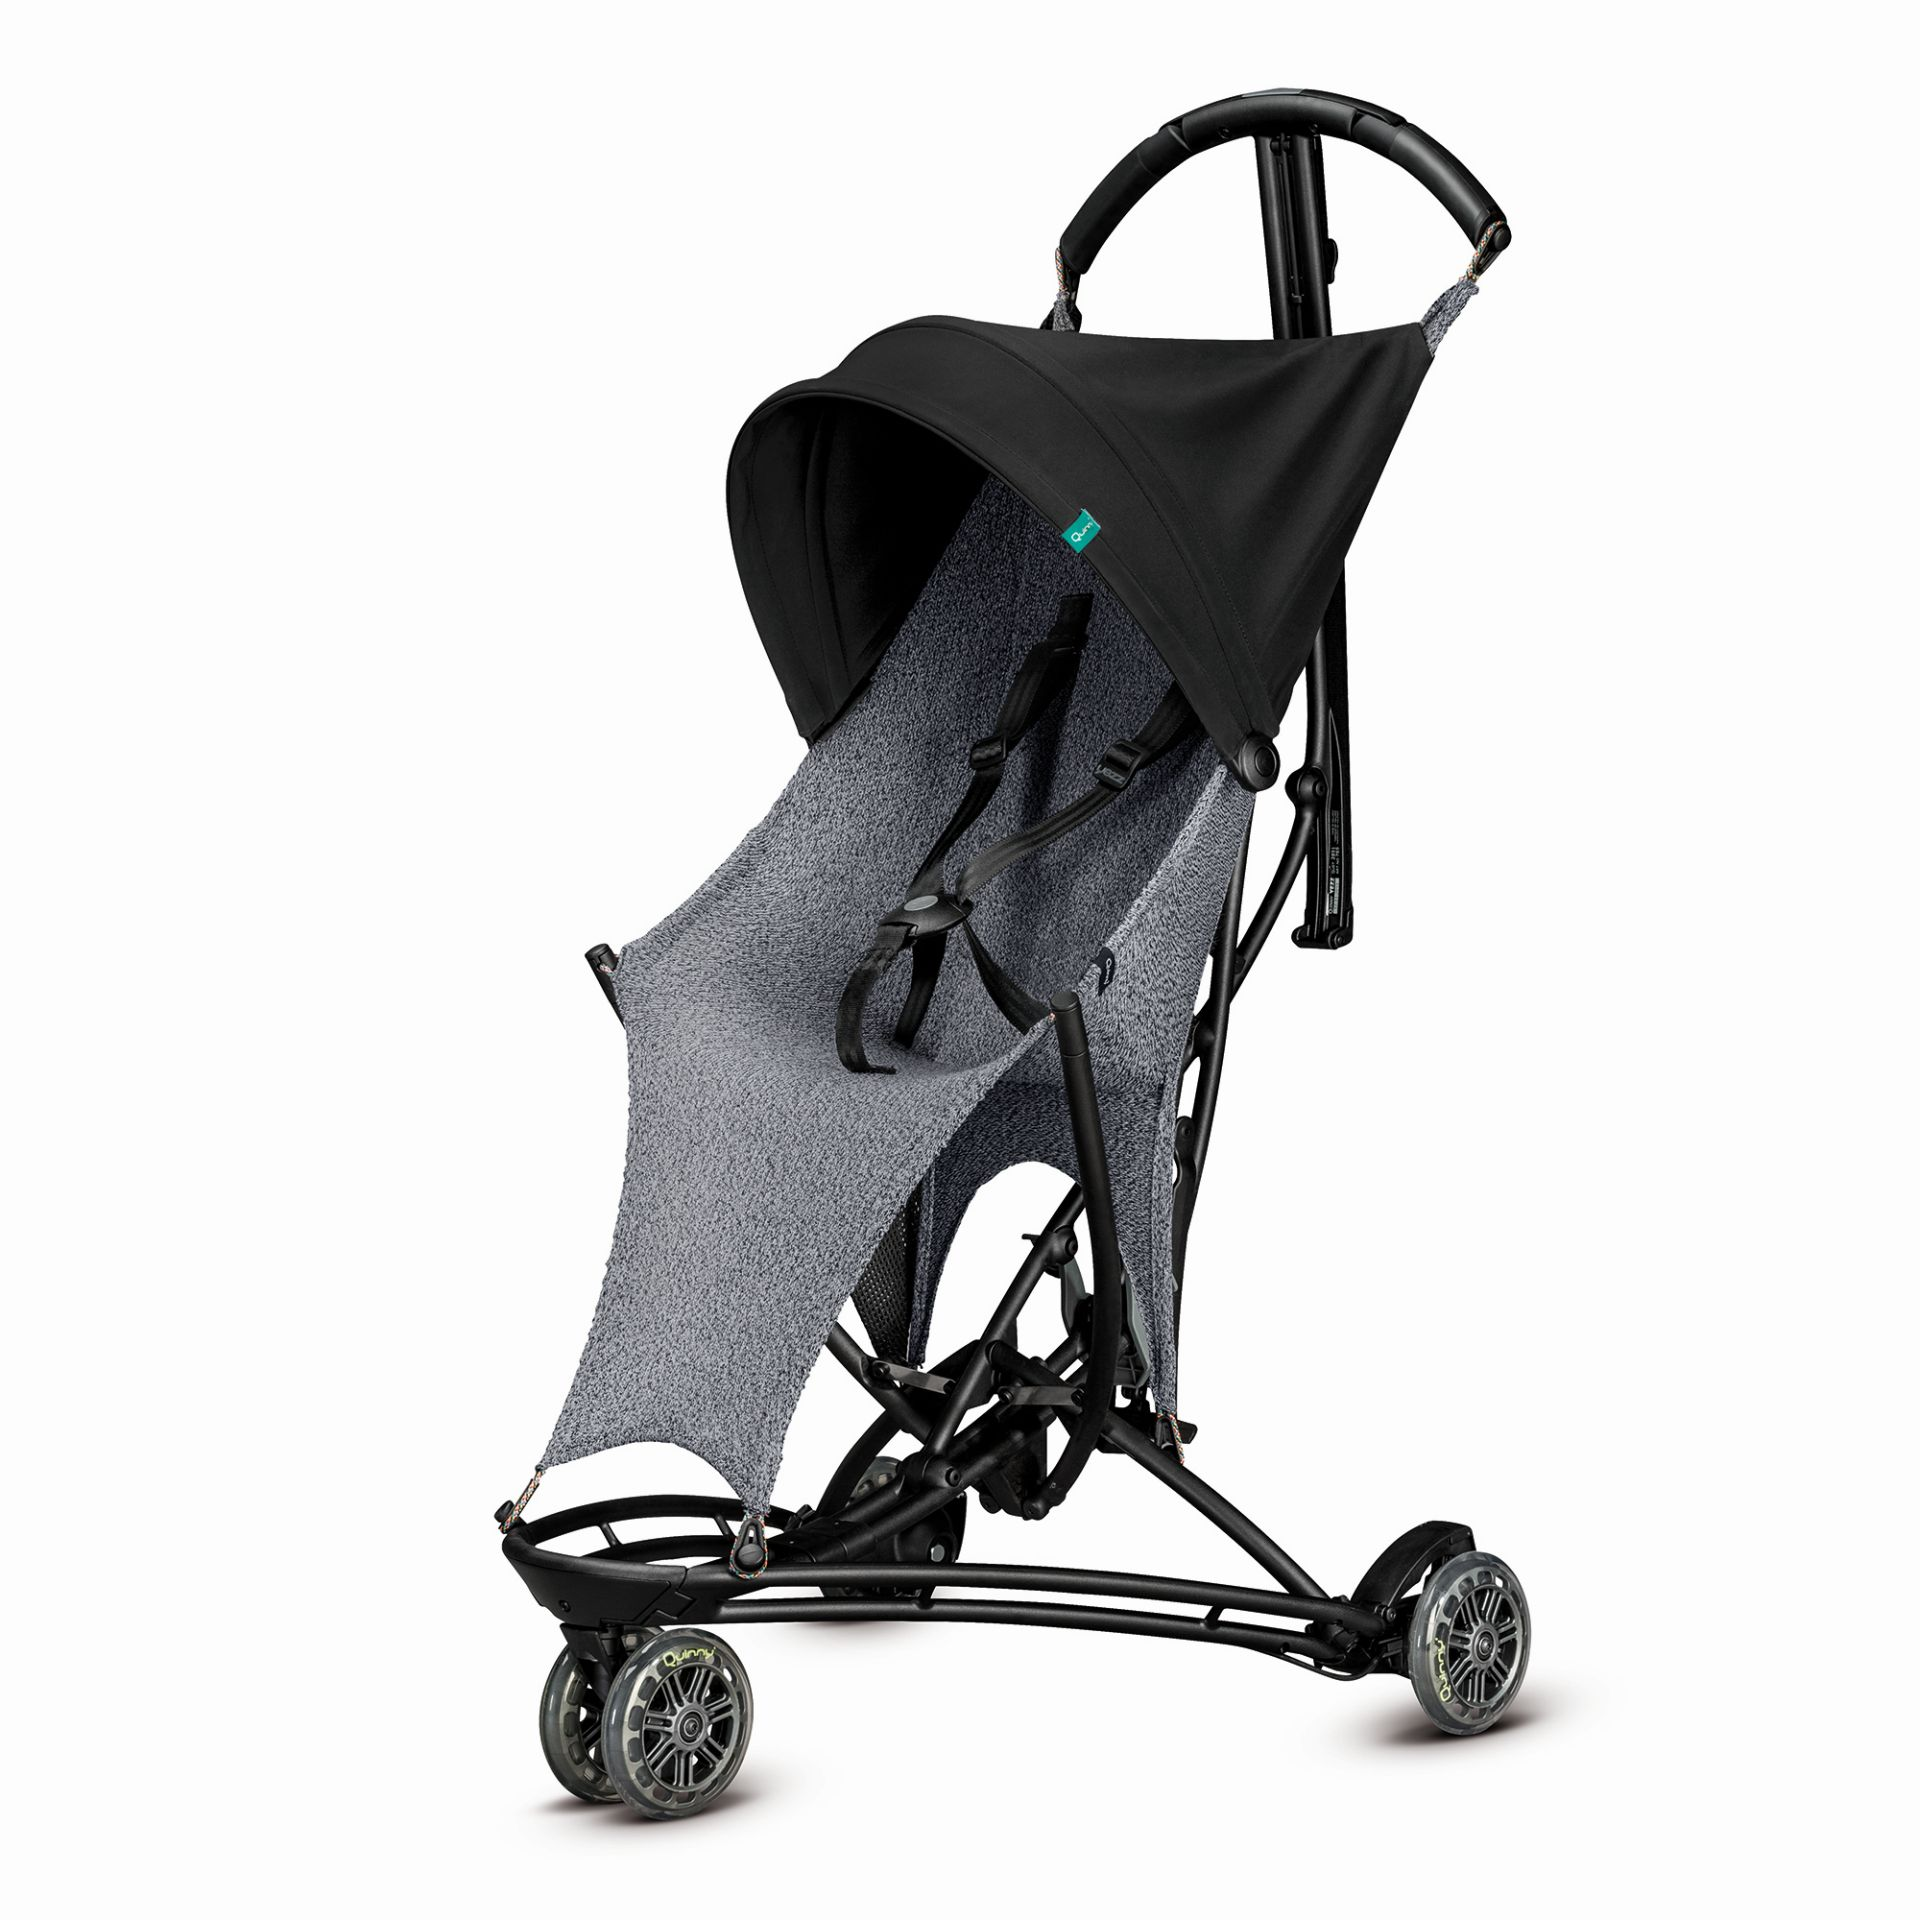 Hängemattensitz Quinny Buggy Yezz Air